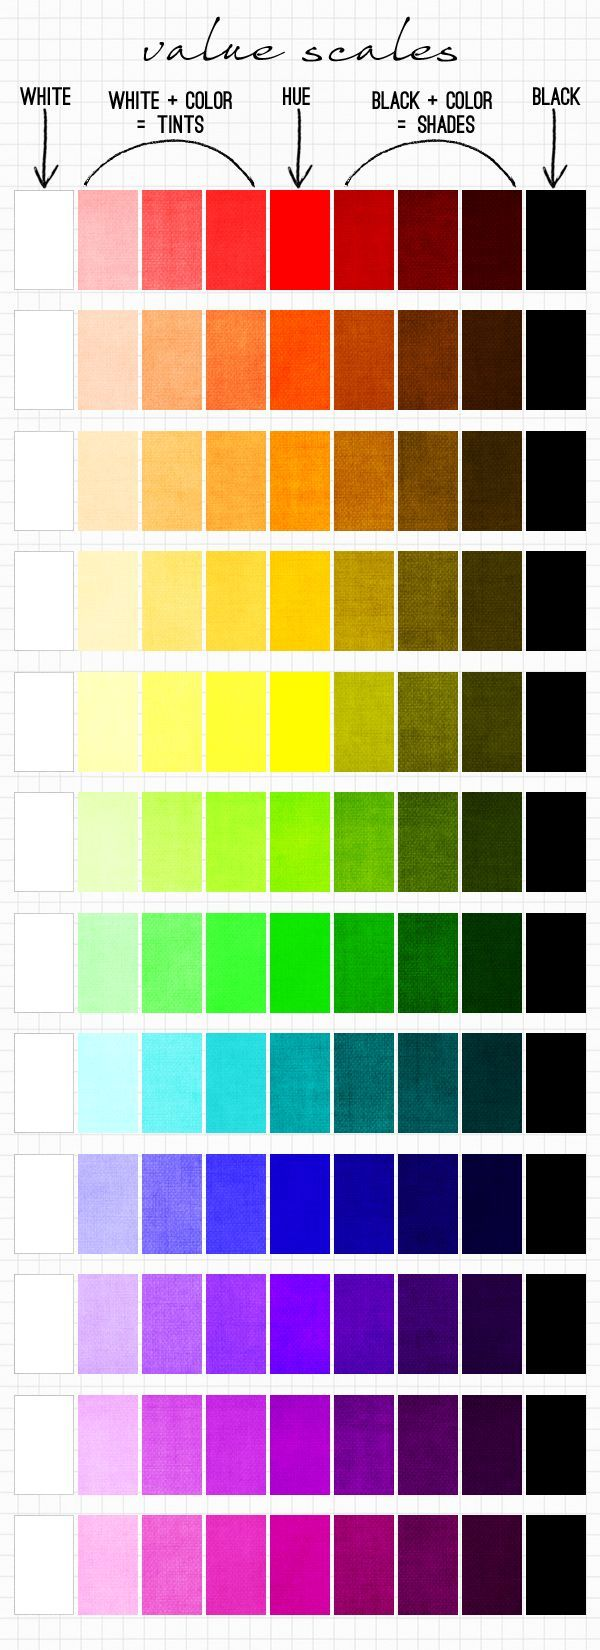 35 best color images on Pinterest | Color palettes, Color theory and ...